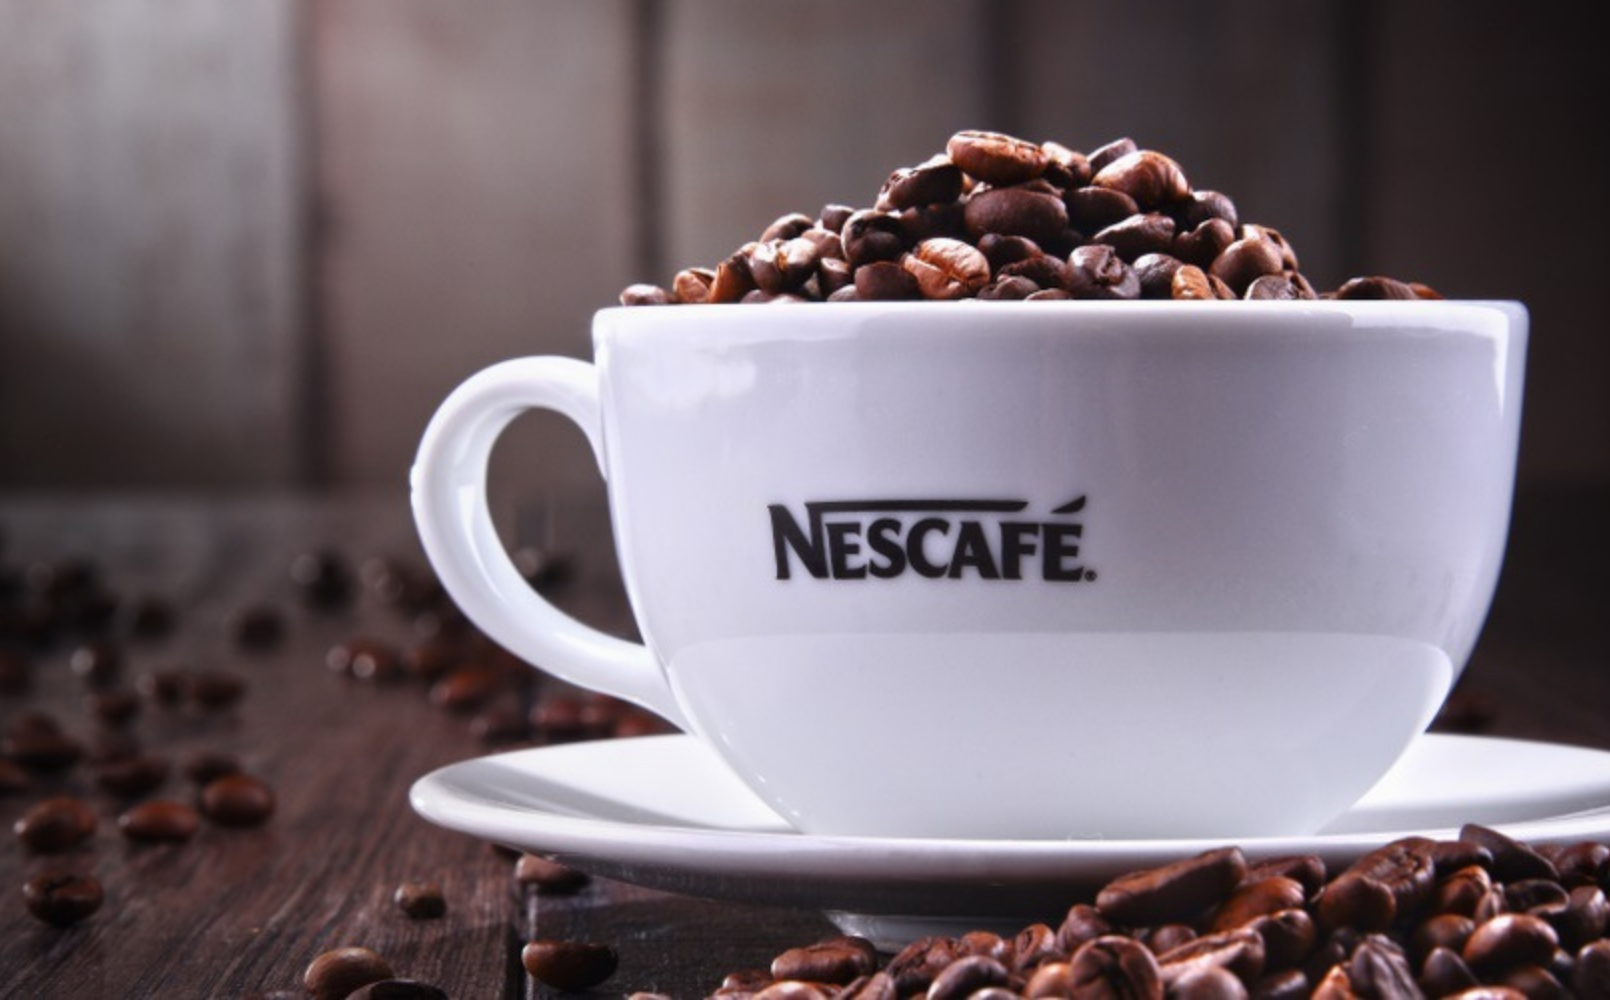 Daily Brief: You'll Pay Whatever It Costs For Your Daily Coffee Fix, And Doesn't Nestlé Know It